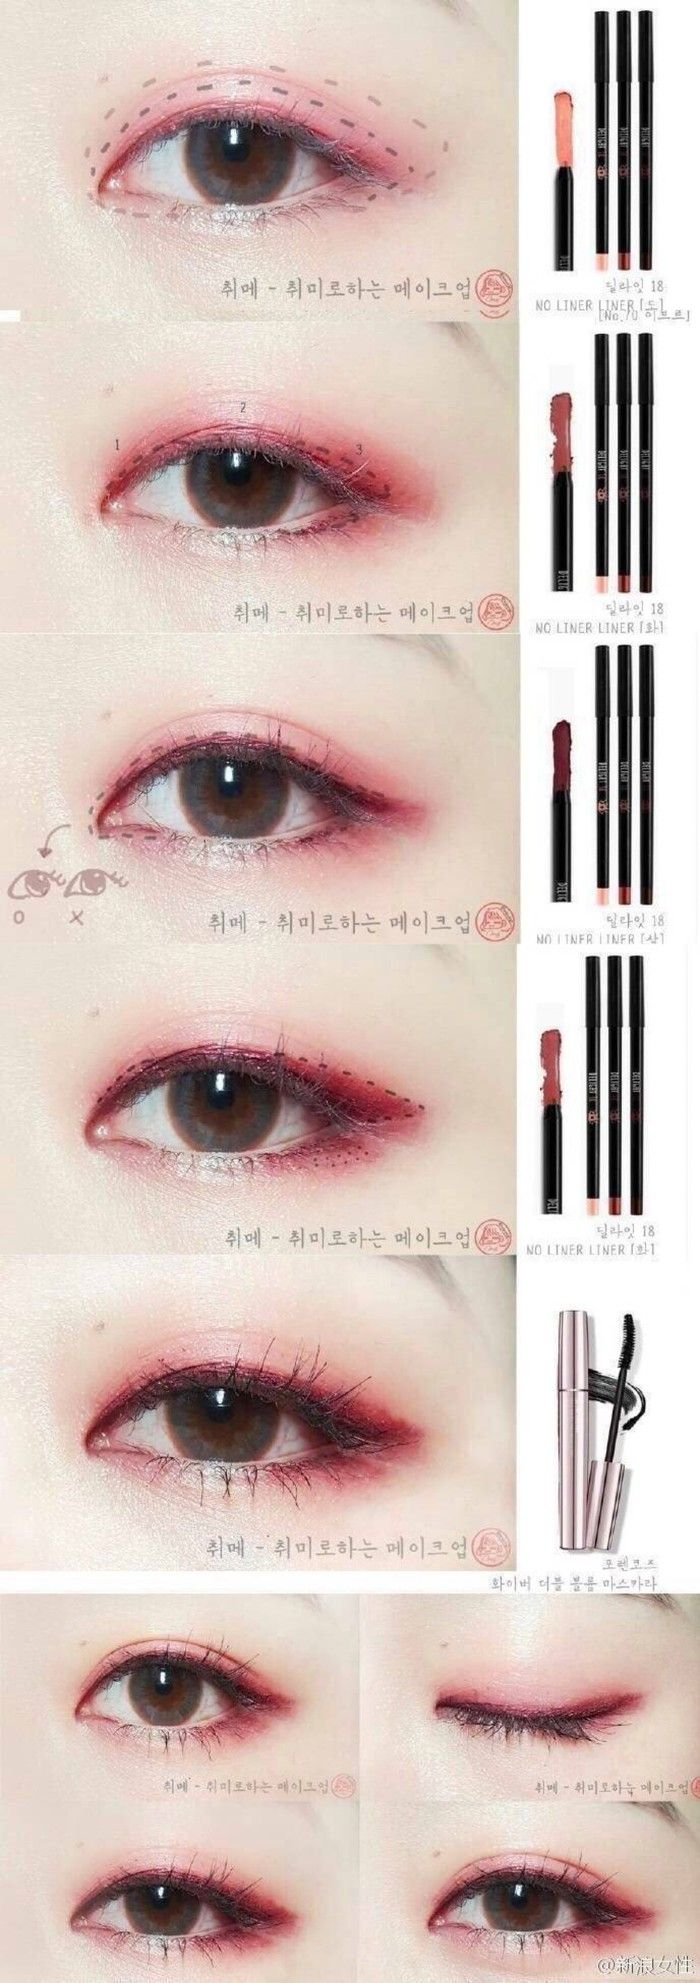 Asian eye eyes make up